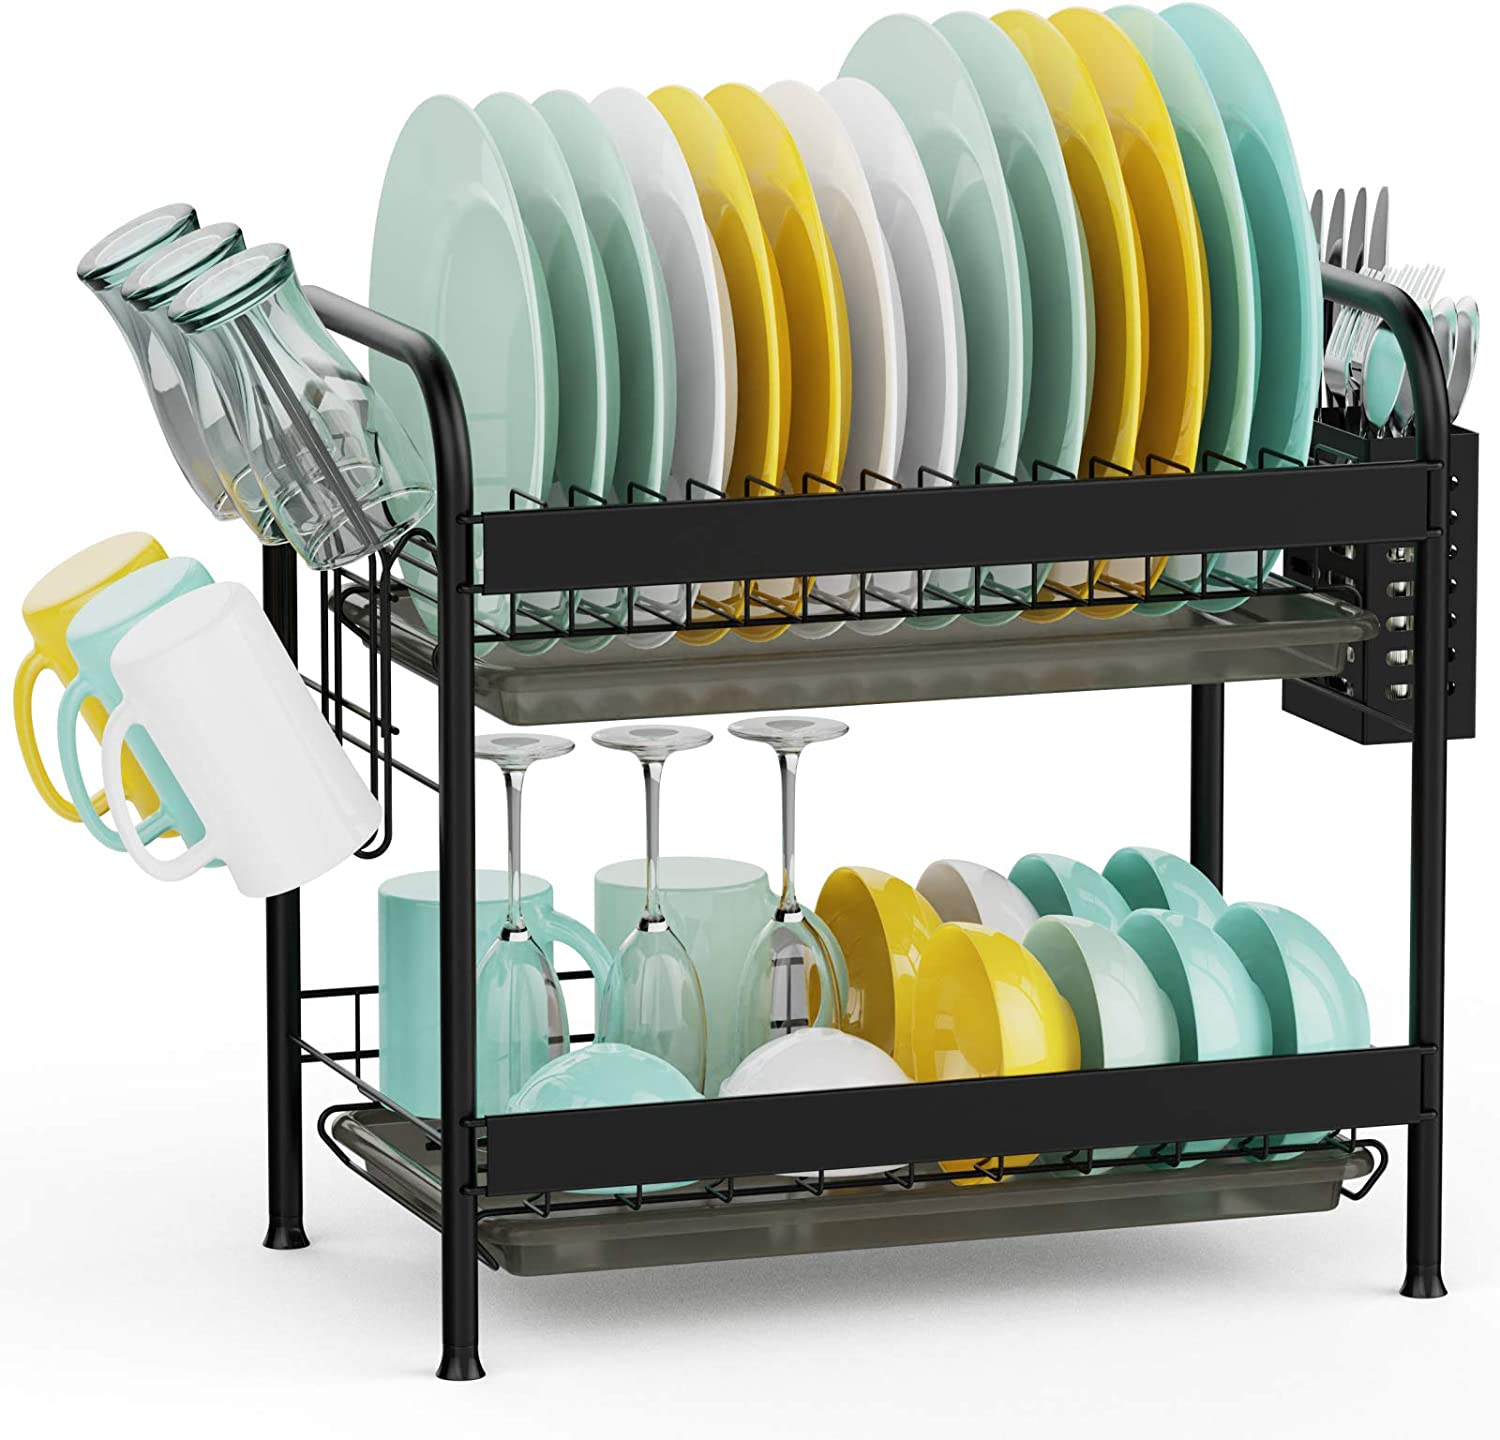 Over The Sink Dish Drying Max 44% OFF Rack D Veckle Ranking TOP9 Premium Steel Stainless